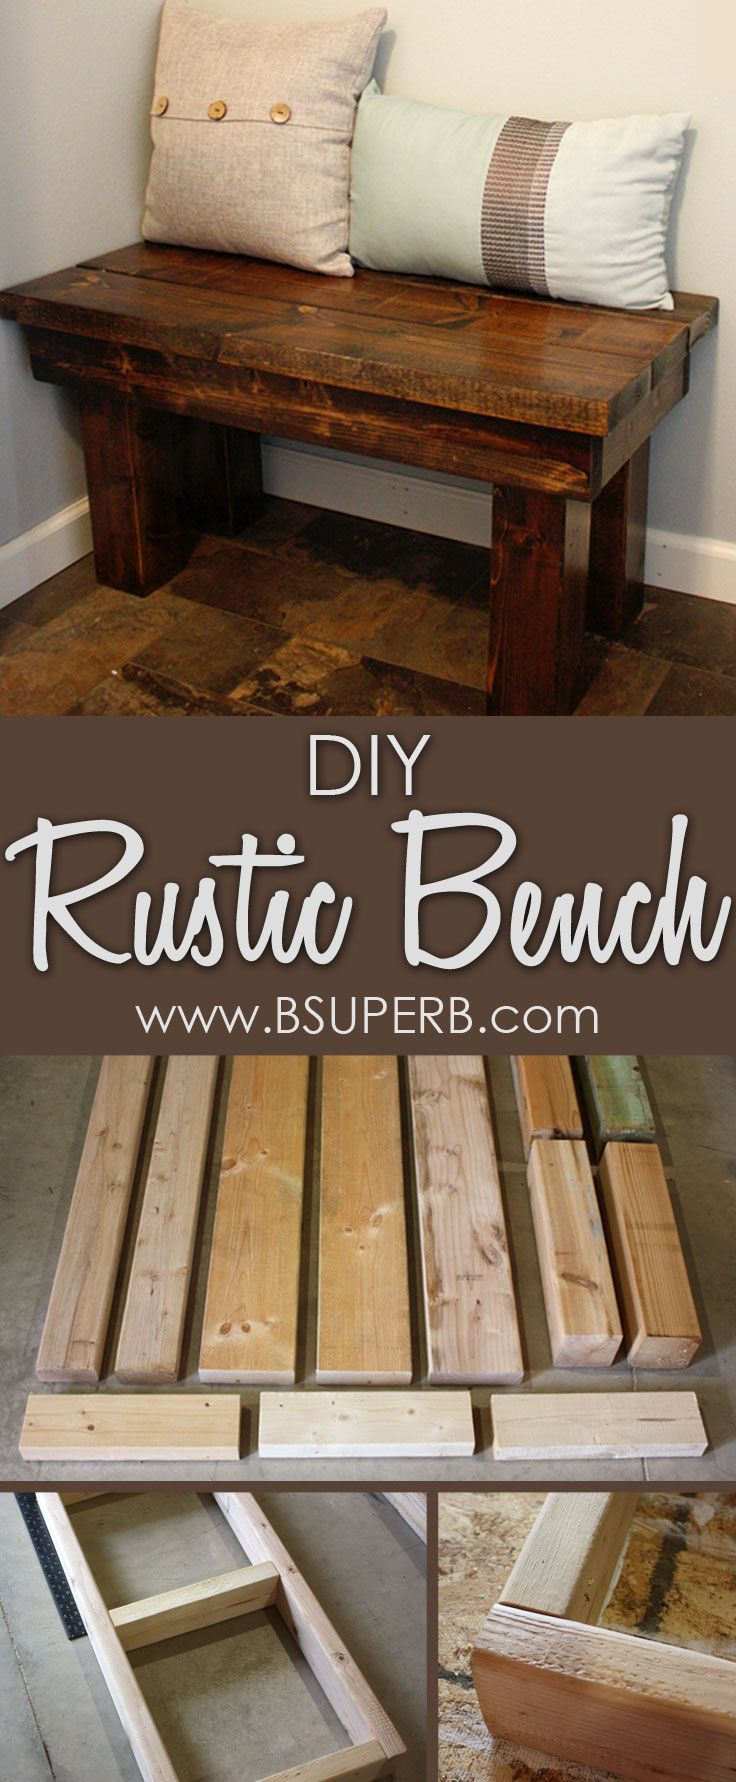 DIY Rustic Bench made from reclaimed wood                                                                                                                                                                                 More